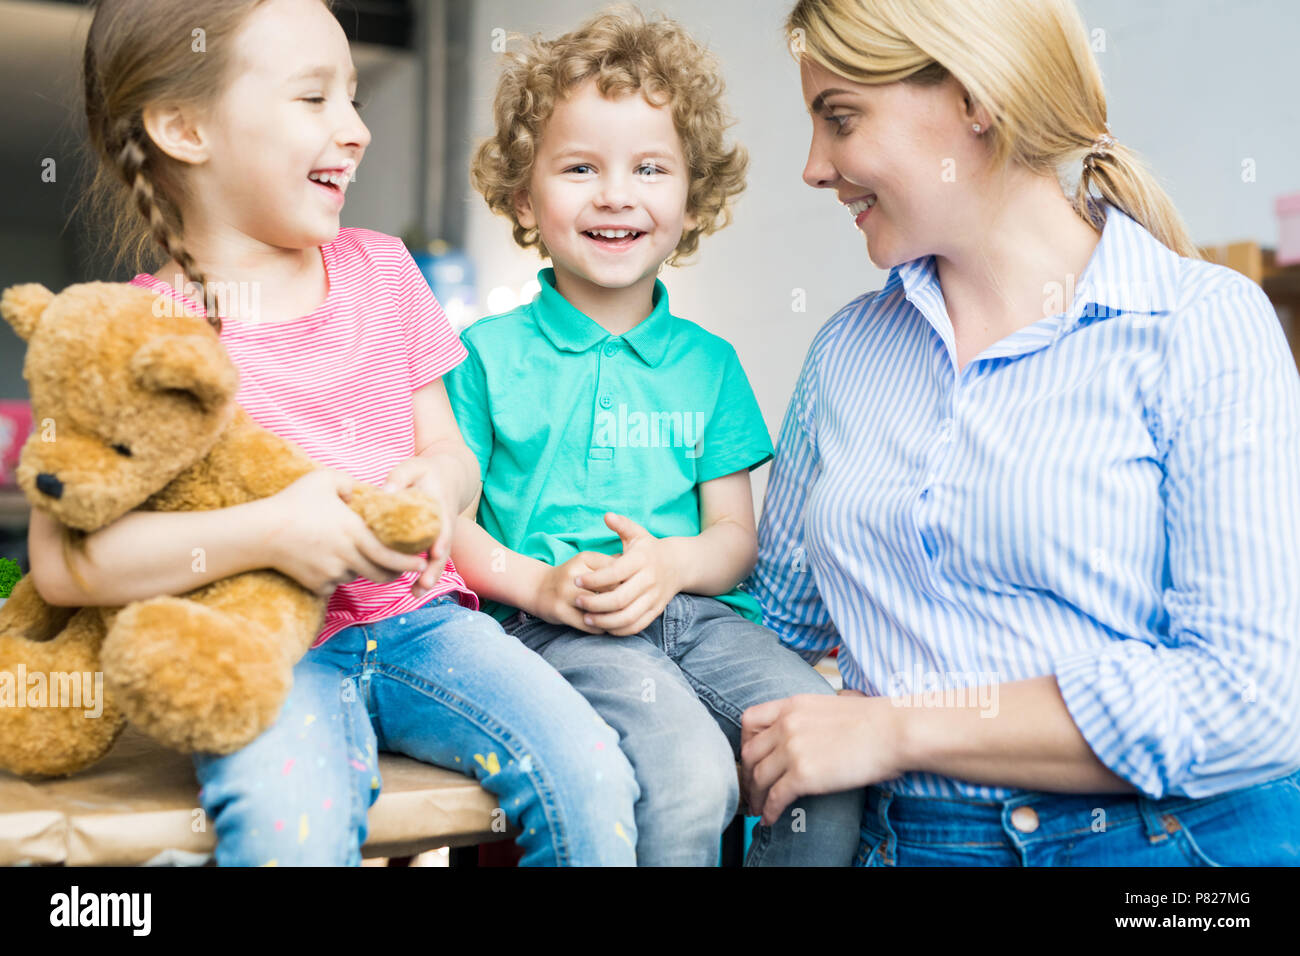 Two Children with Young Mother - Stock Image